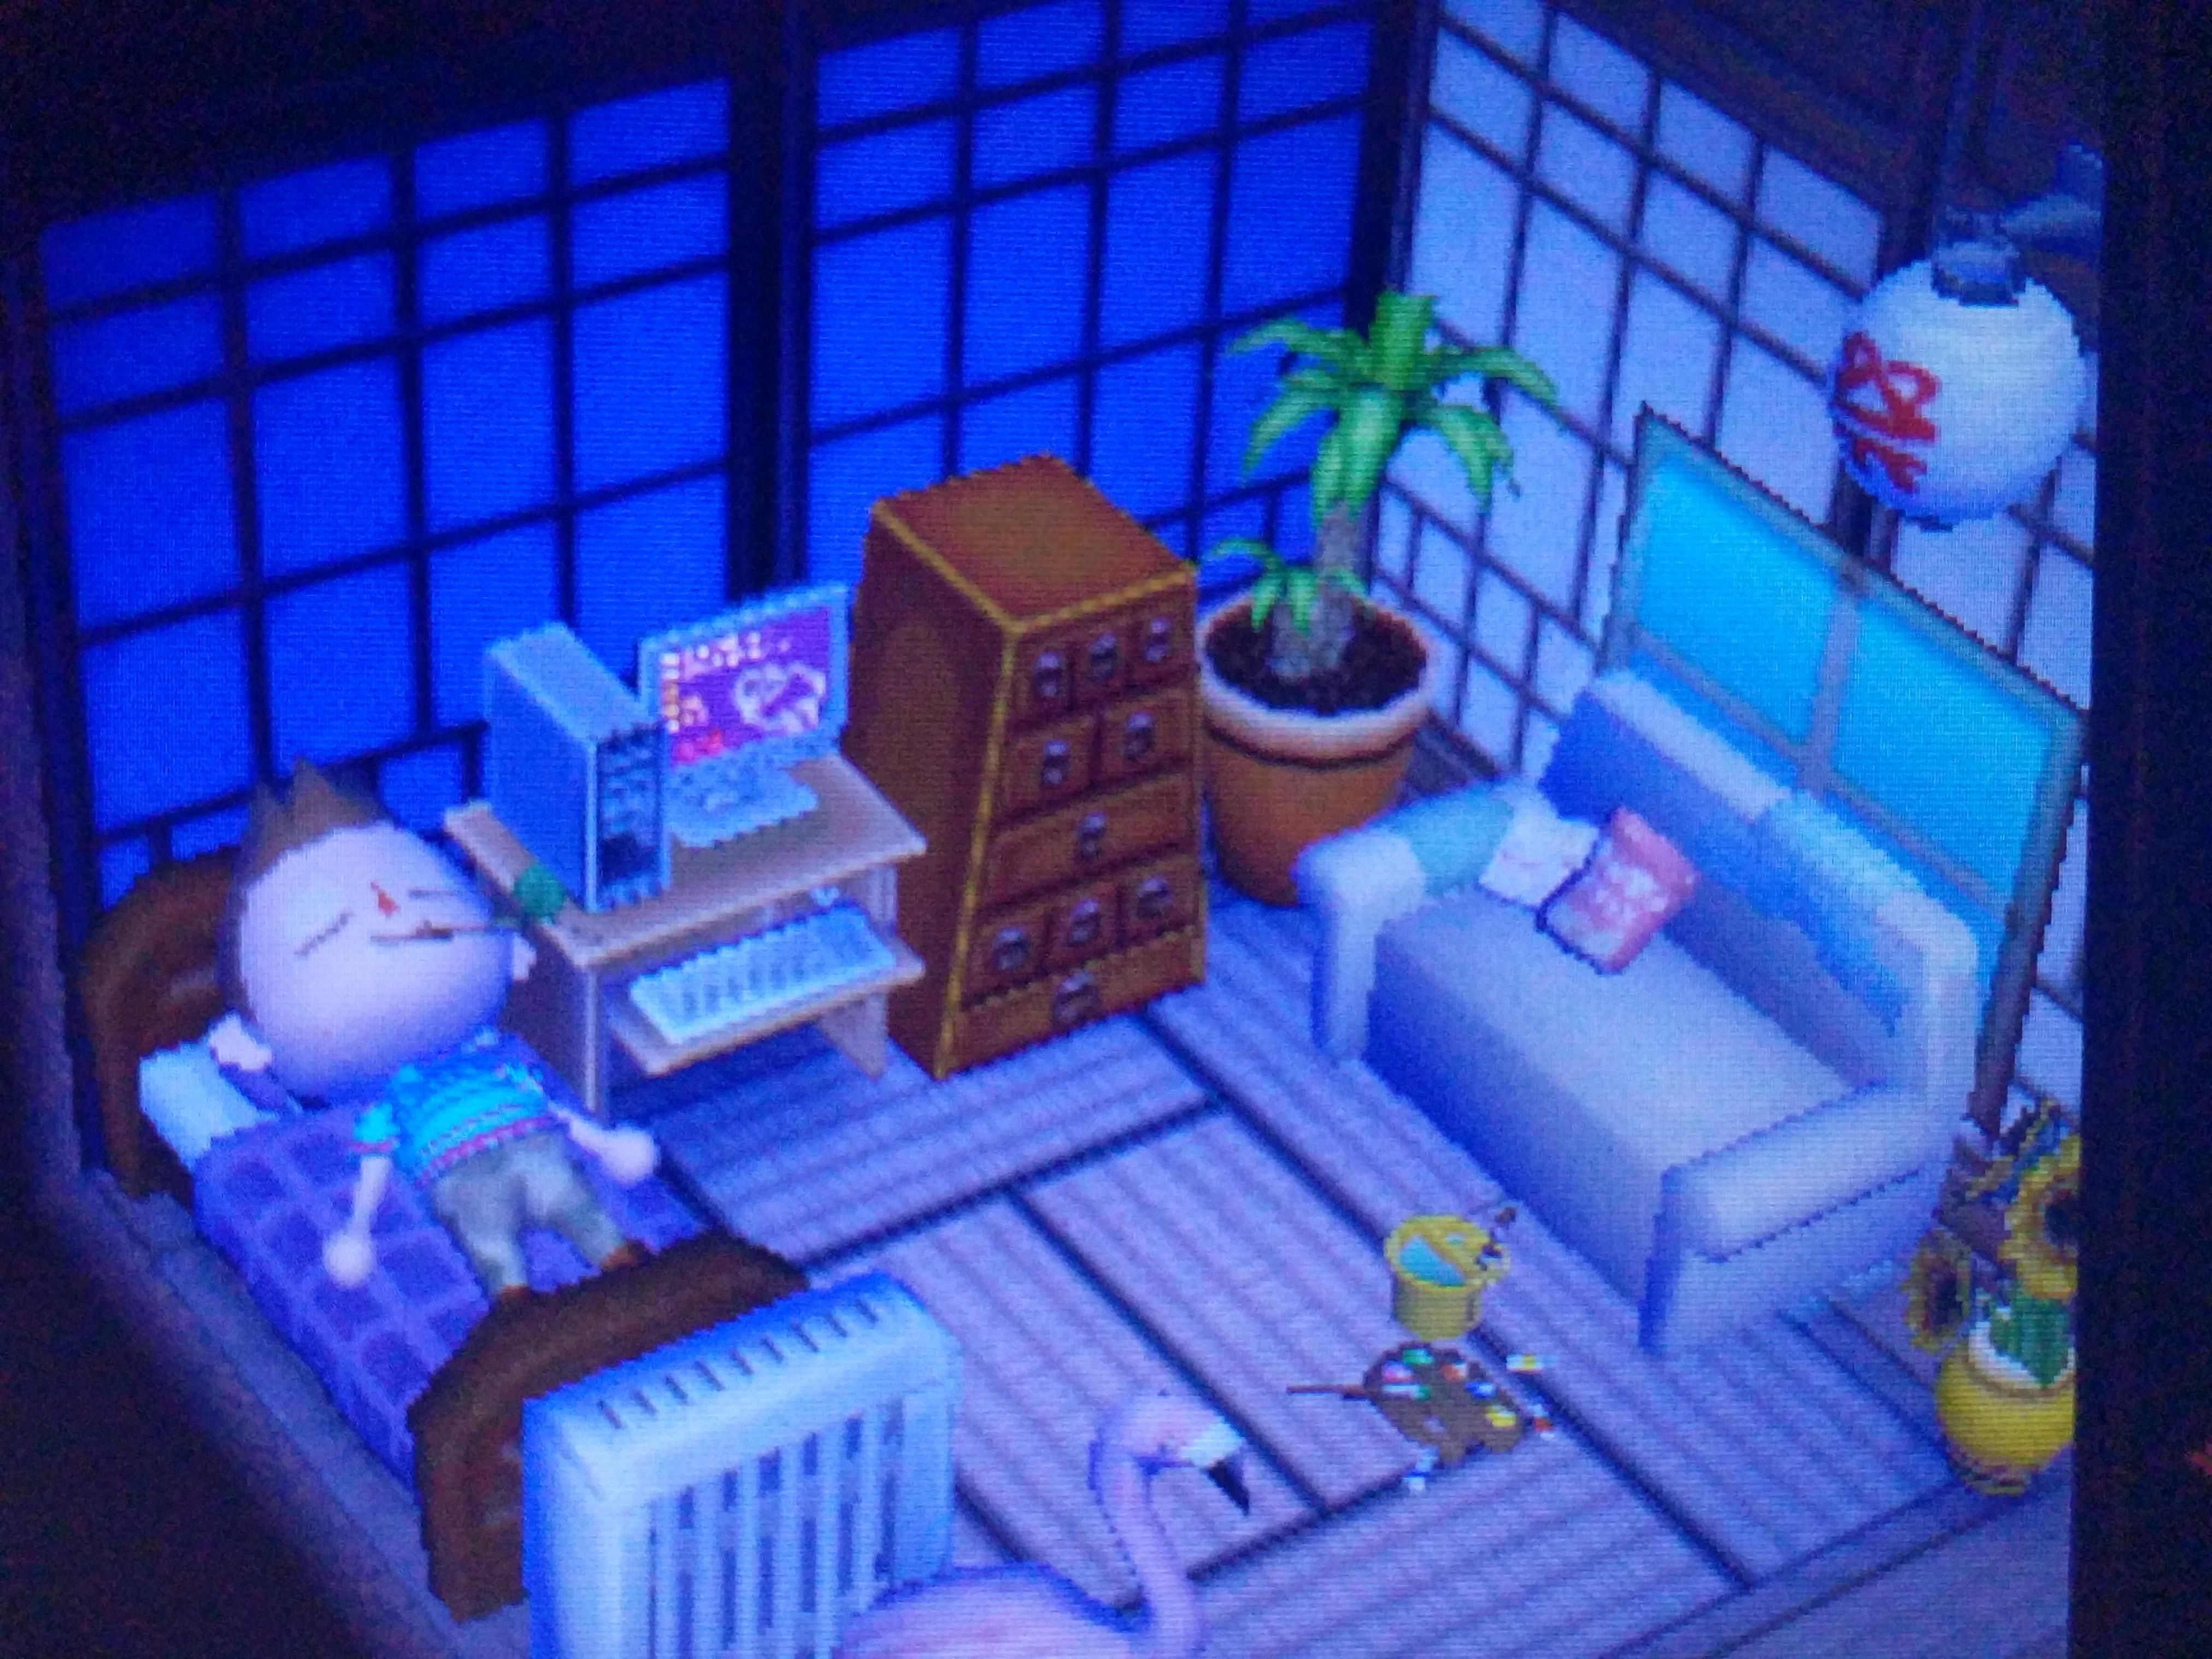 I Made A Vaporwave Room In Animal Crossing With Images Animal